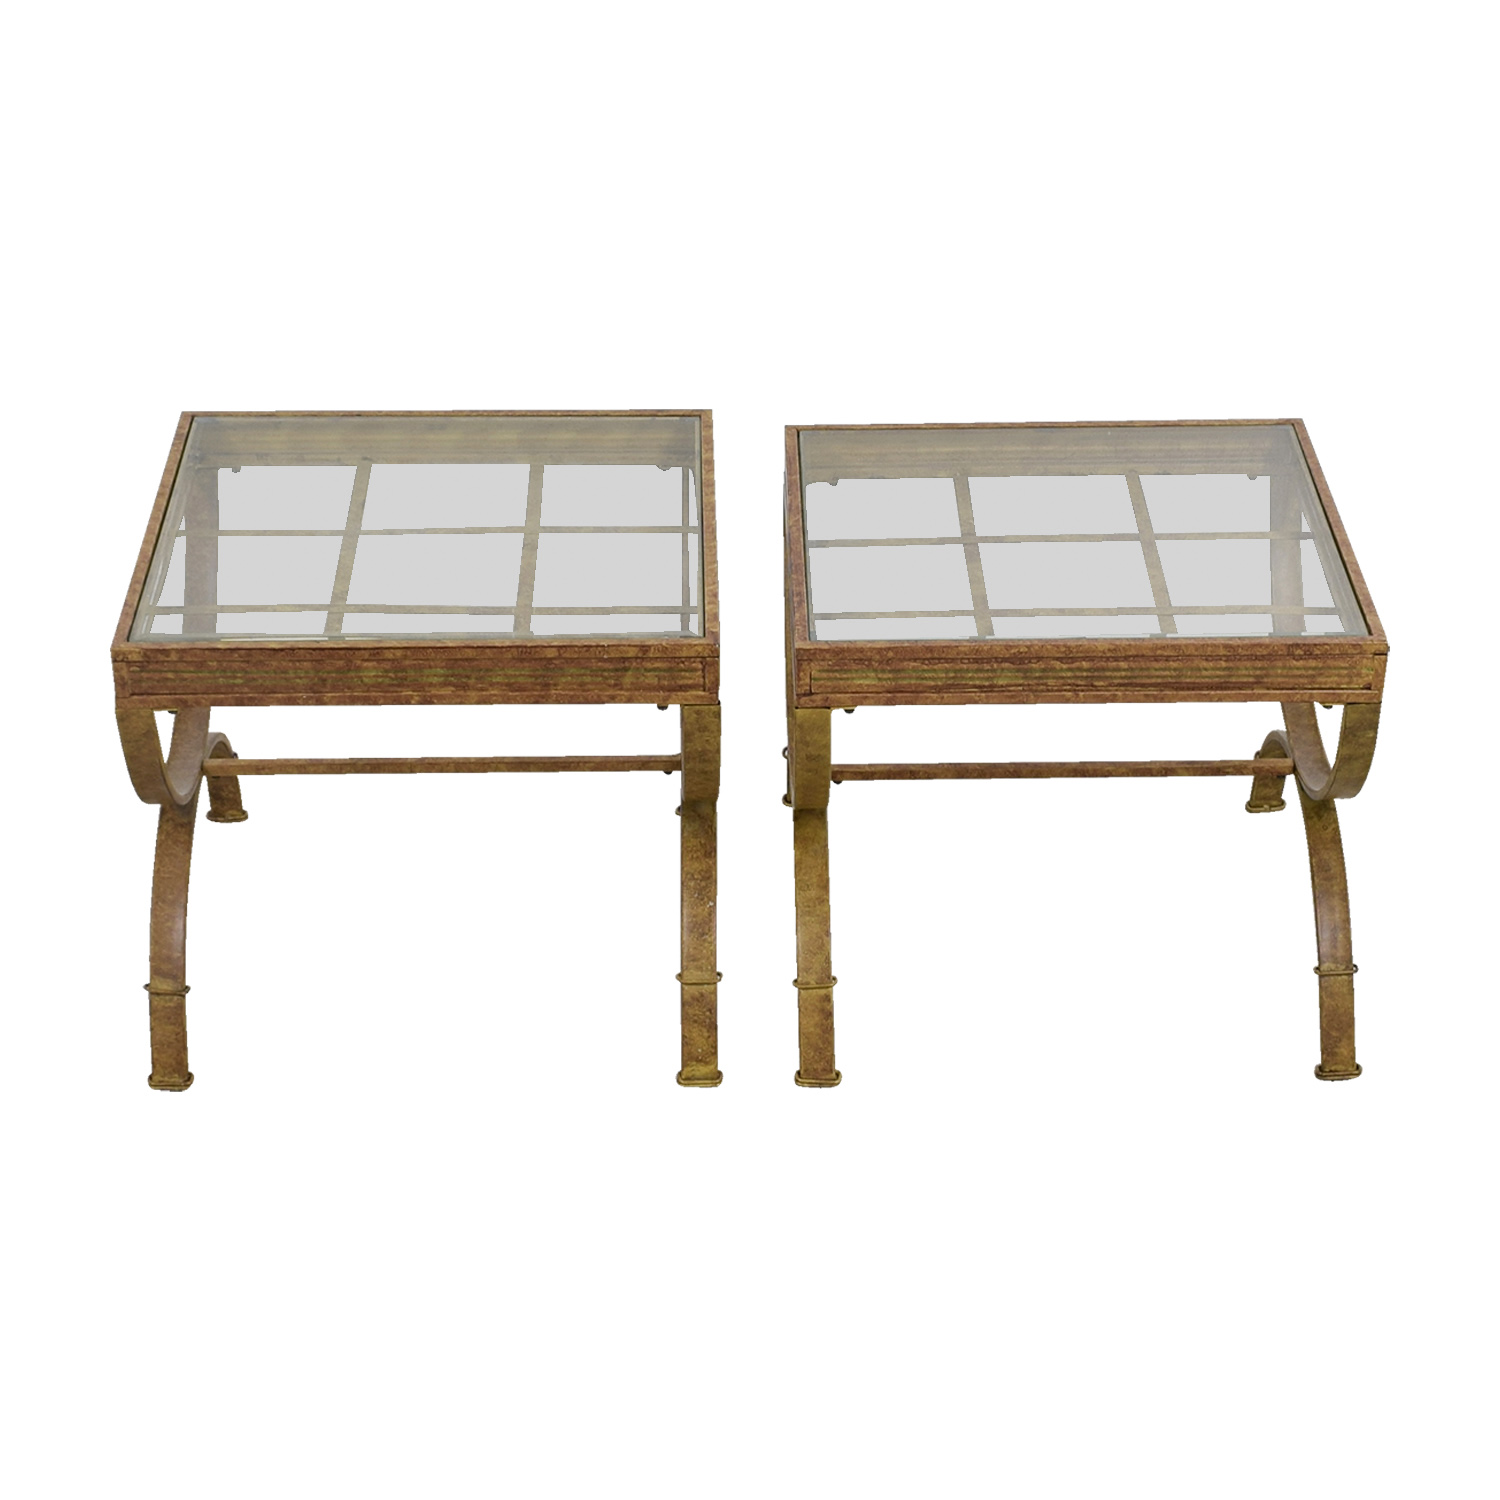 buy Bobs Furniture Brown and Glass End Tables Bobs Furniture End Tables